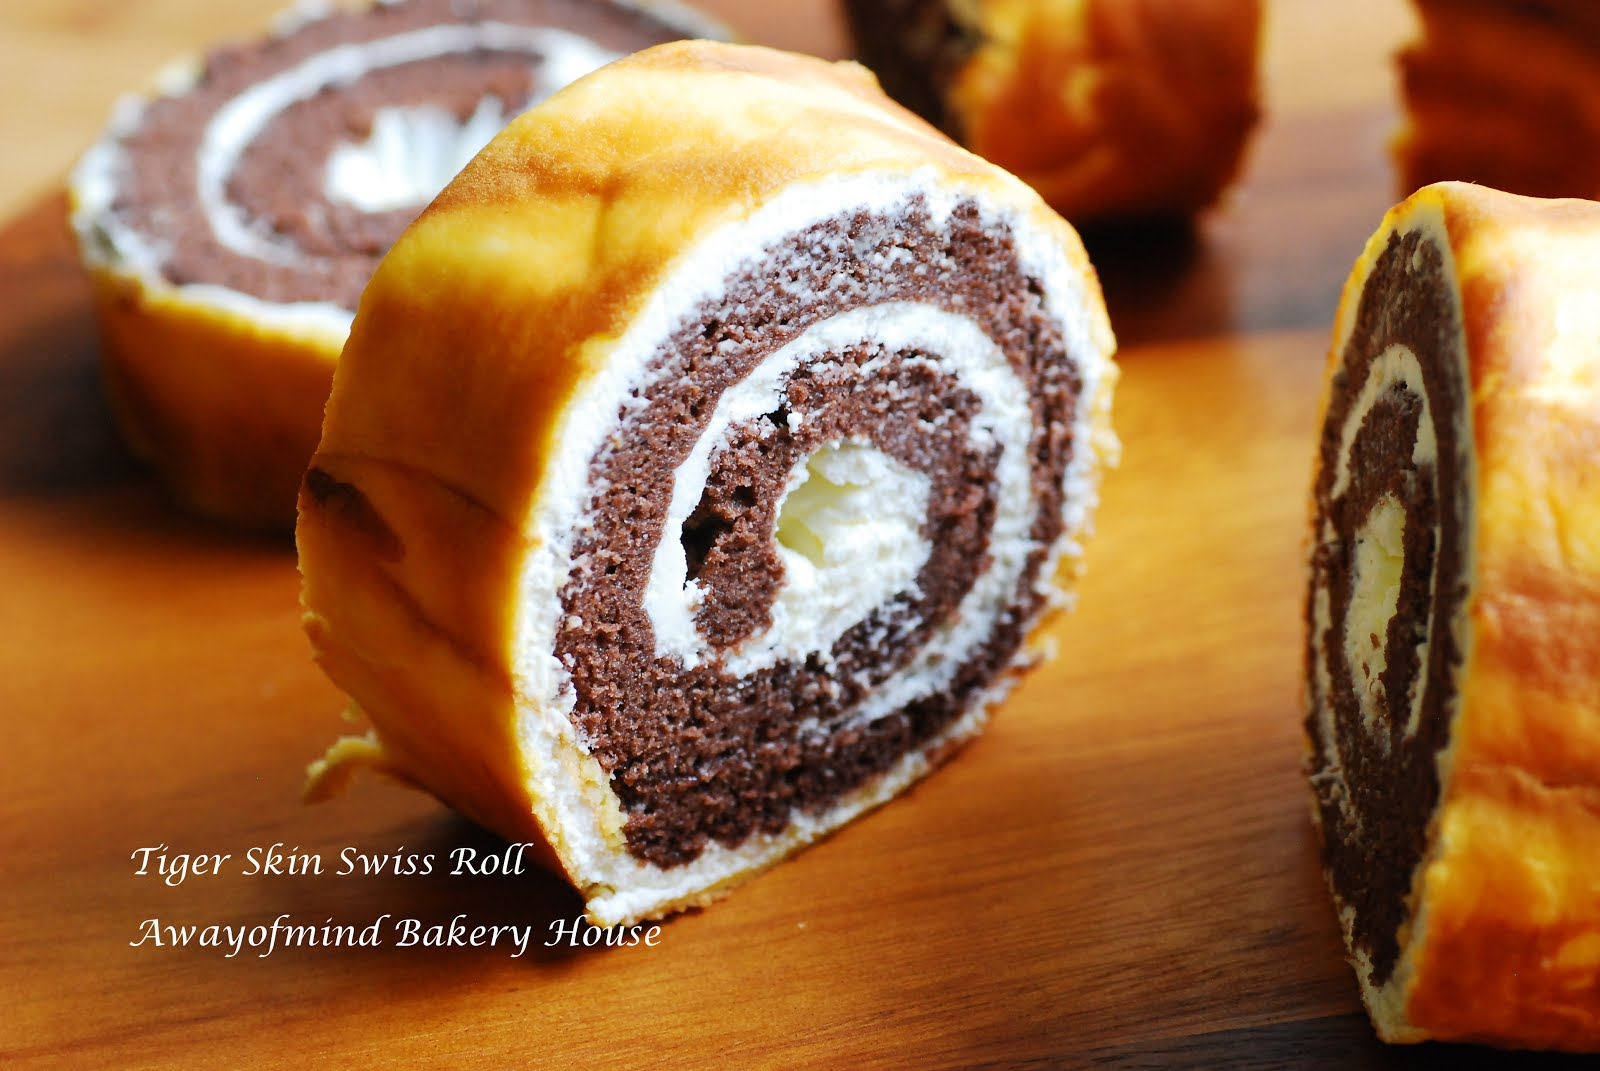 Tiger Skin Swiss Roll